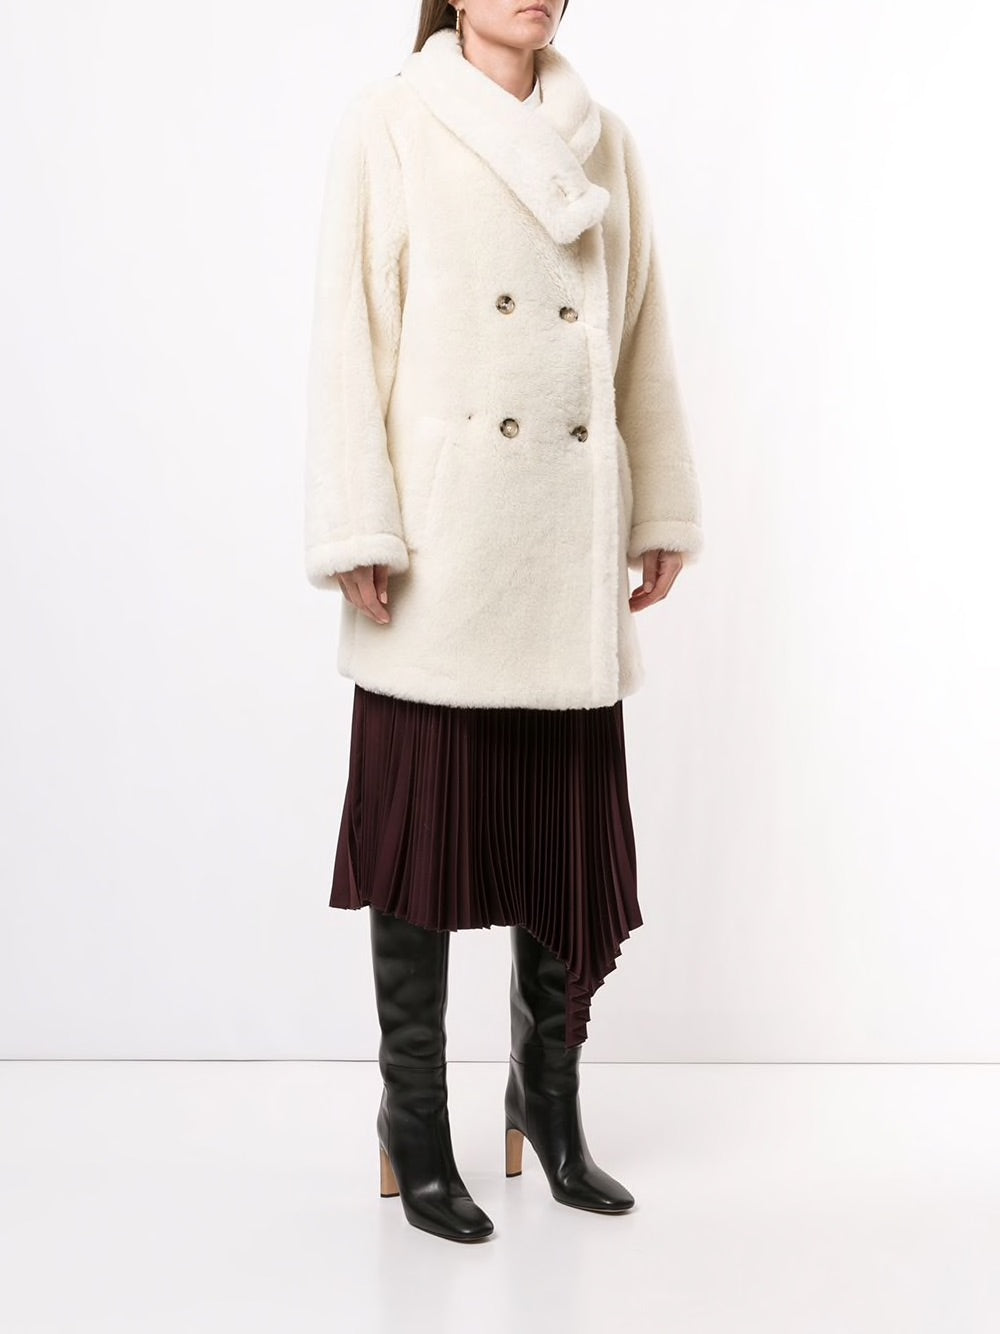 MAX MARA WOMEN TEDDY 4 COAT